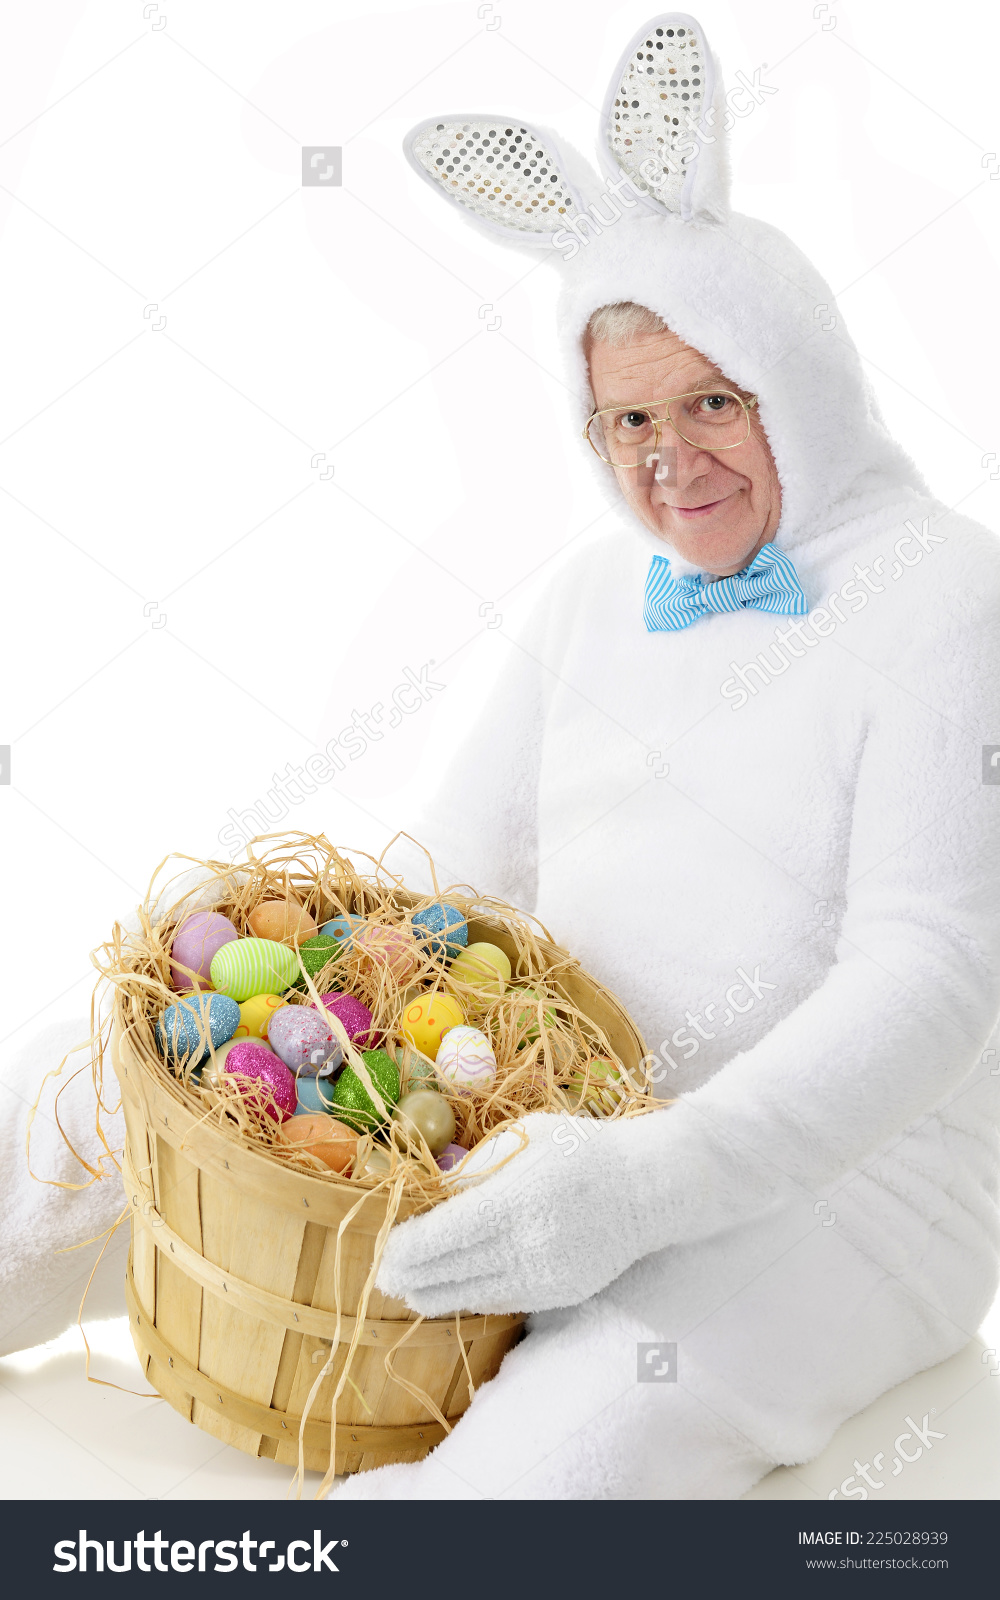 Title: A senior adult man in an easter bunny outfit happily showing off a bushel of colorful eggs Grandpa, I told you to skip the outfit!